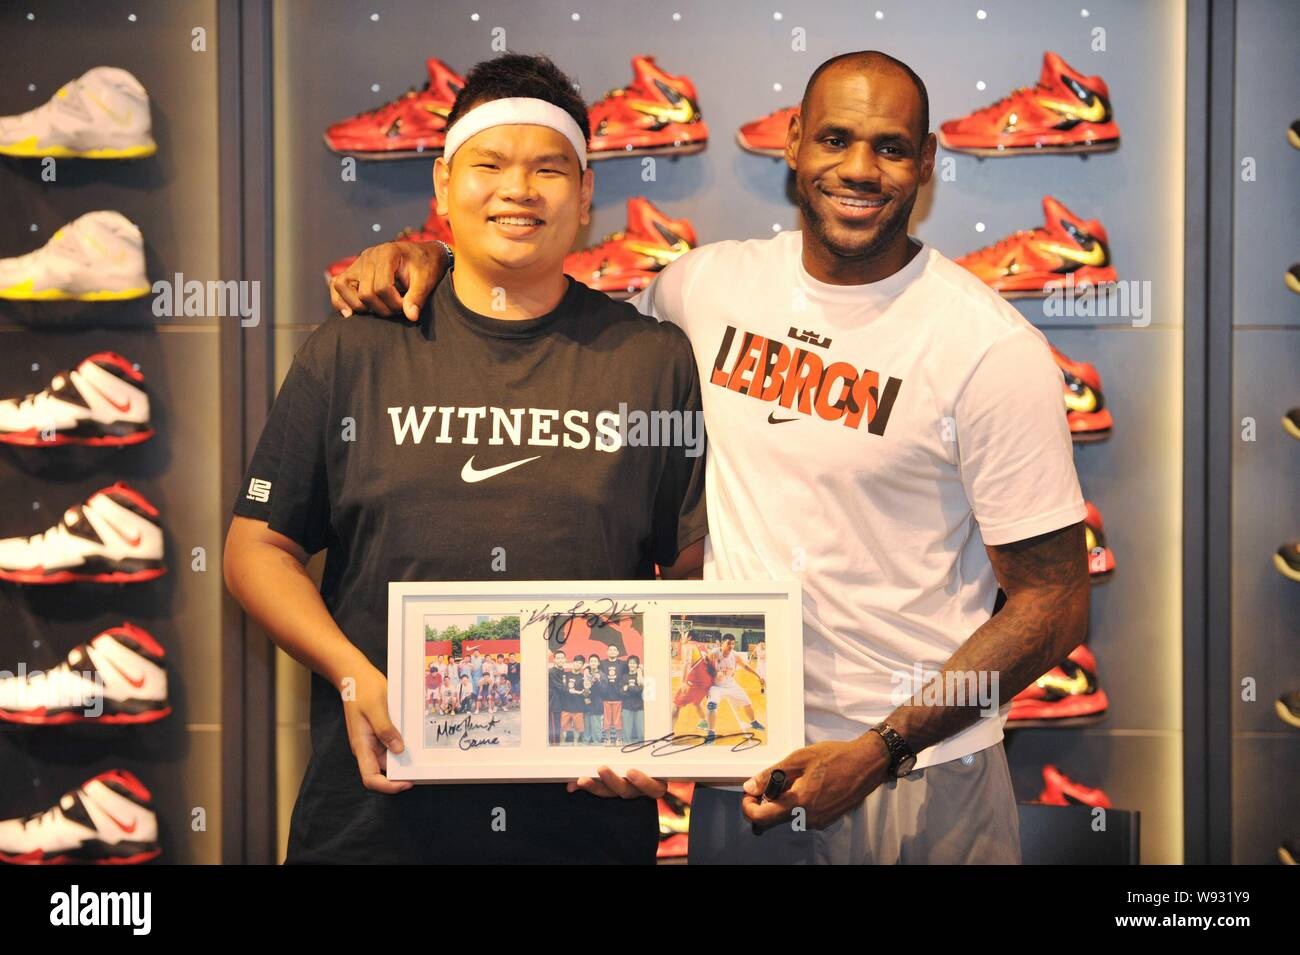 new concept 7e5c0 7fb82 NBA superstar LeBron James, right, poses with a fan during a ...